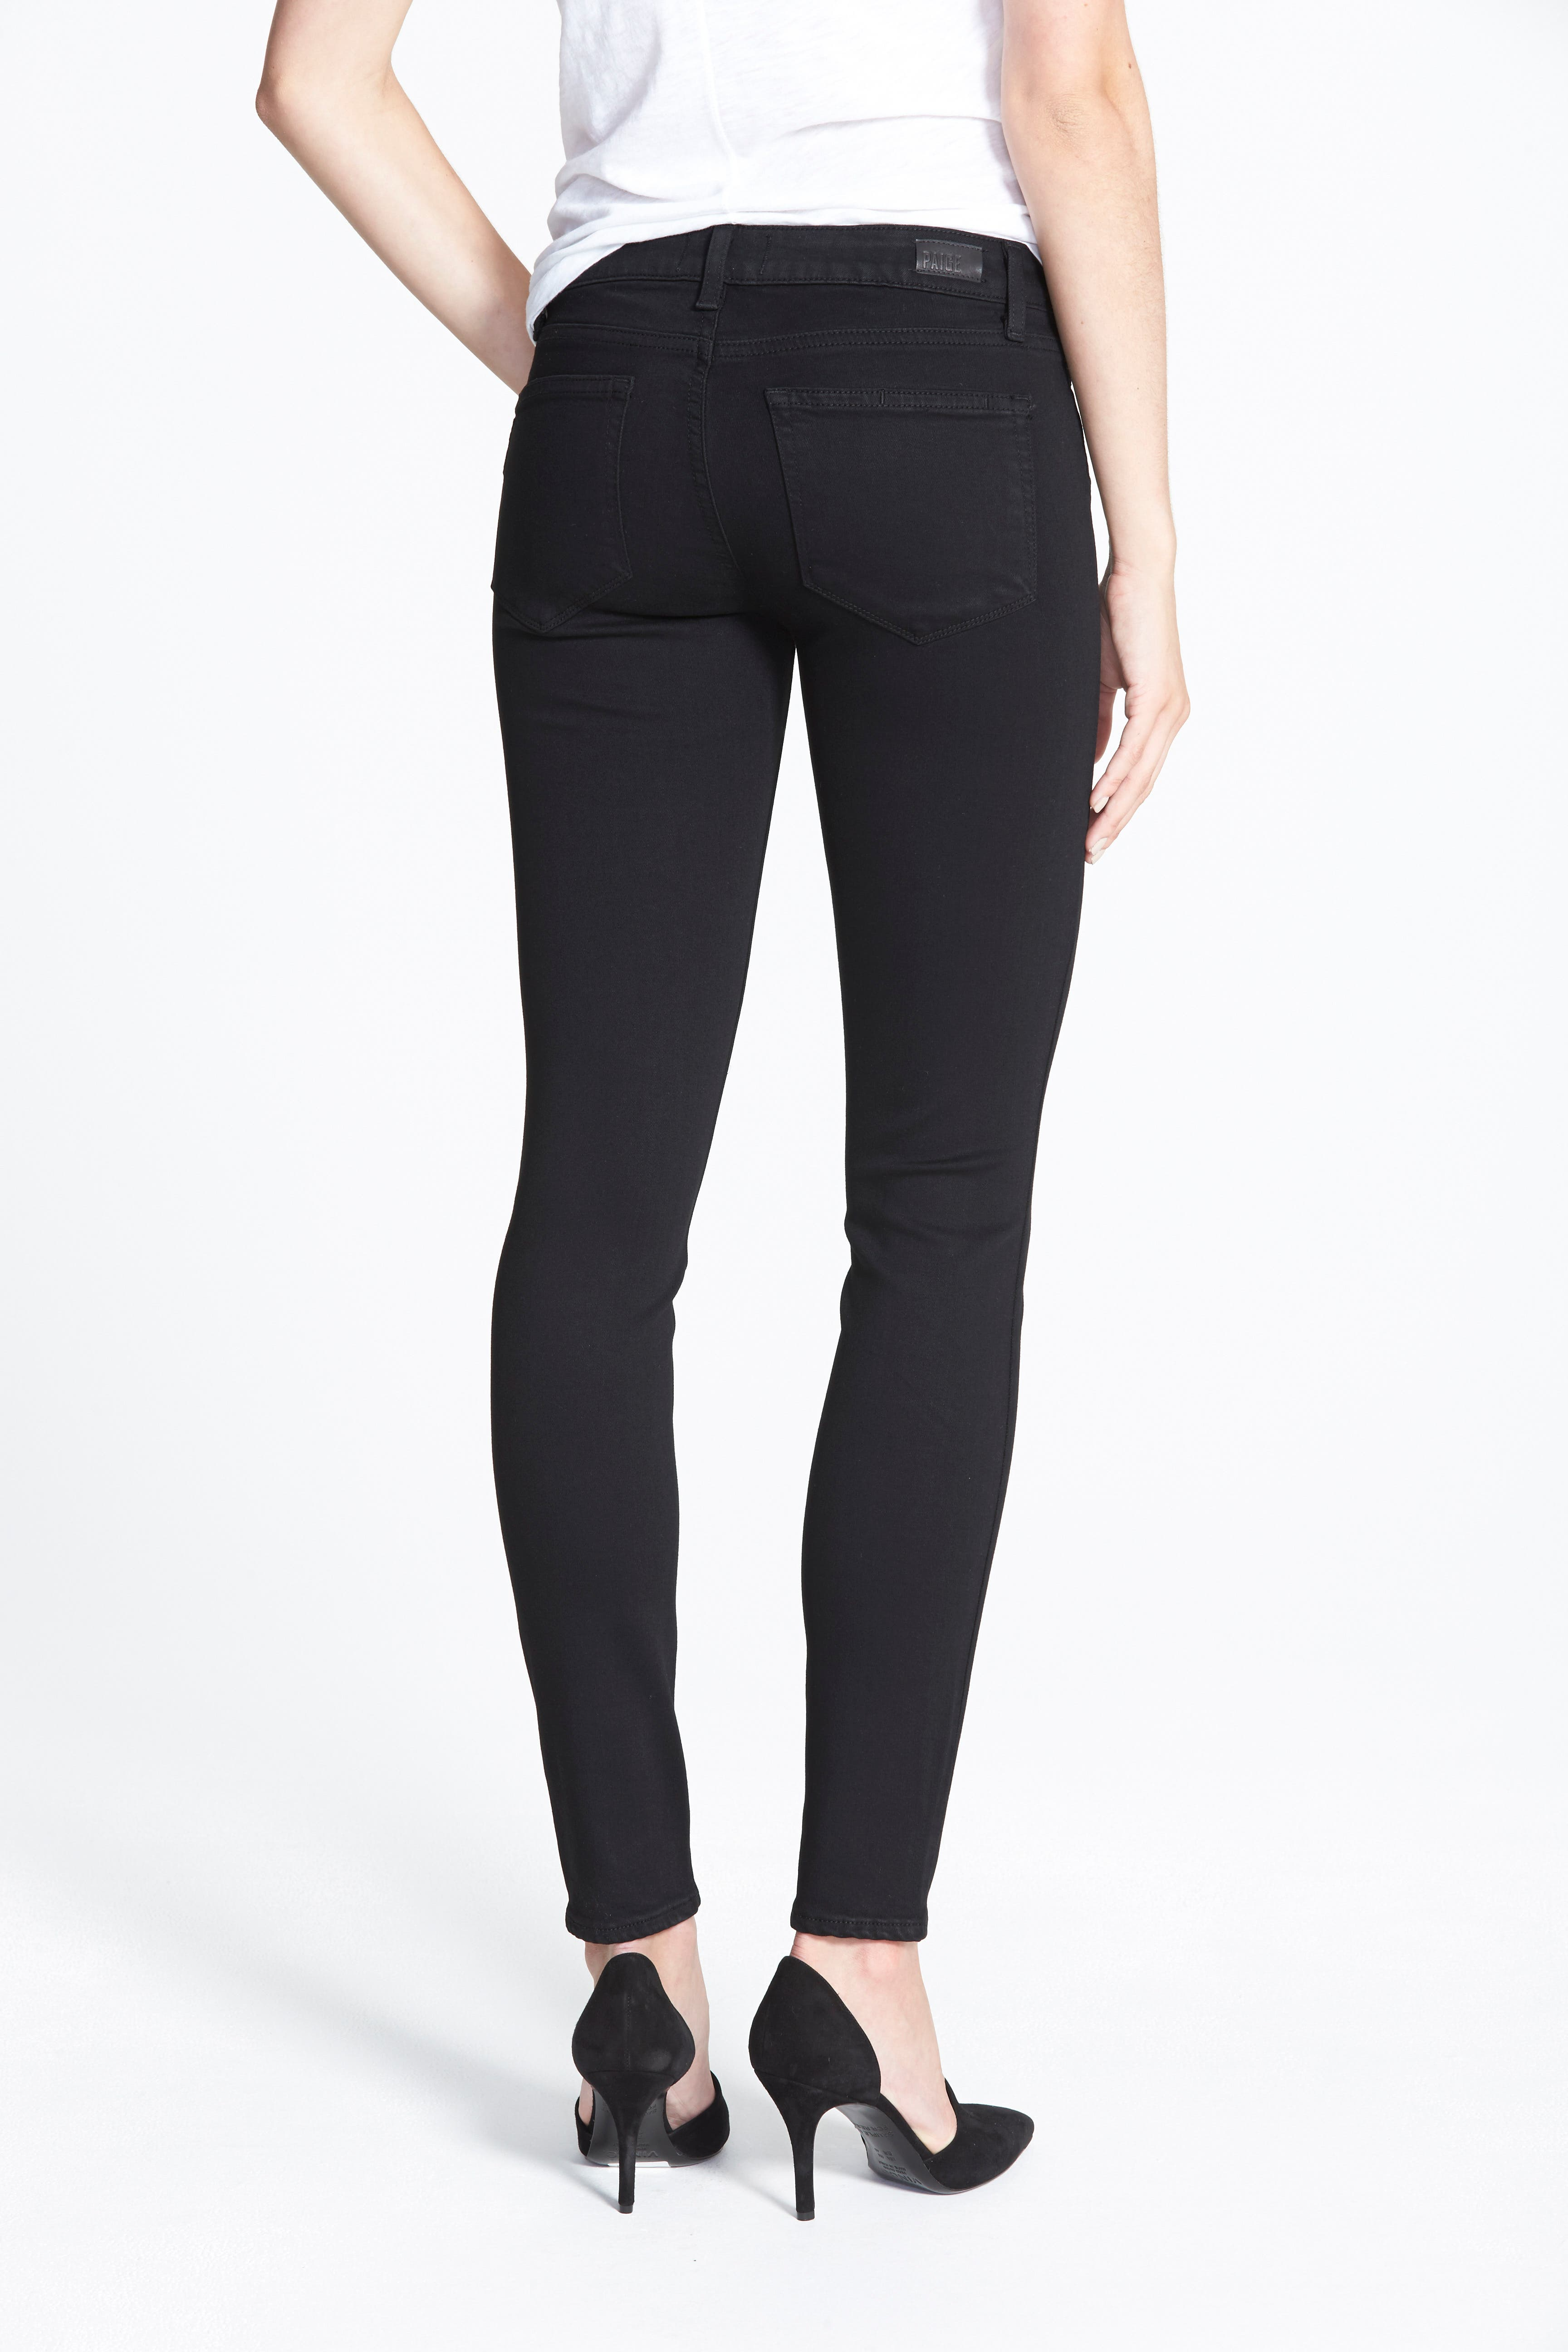 Transcend - Verdugo Ultra Skinny Jeans,                             Alternate thumbnail 2, color,                             BLACK SHADOW